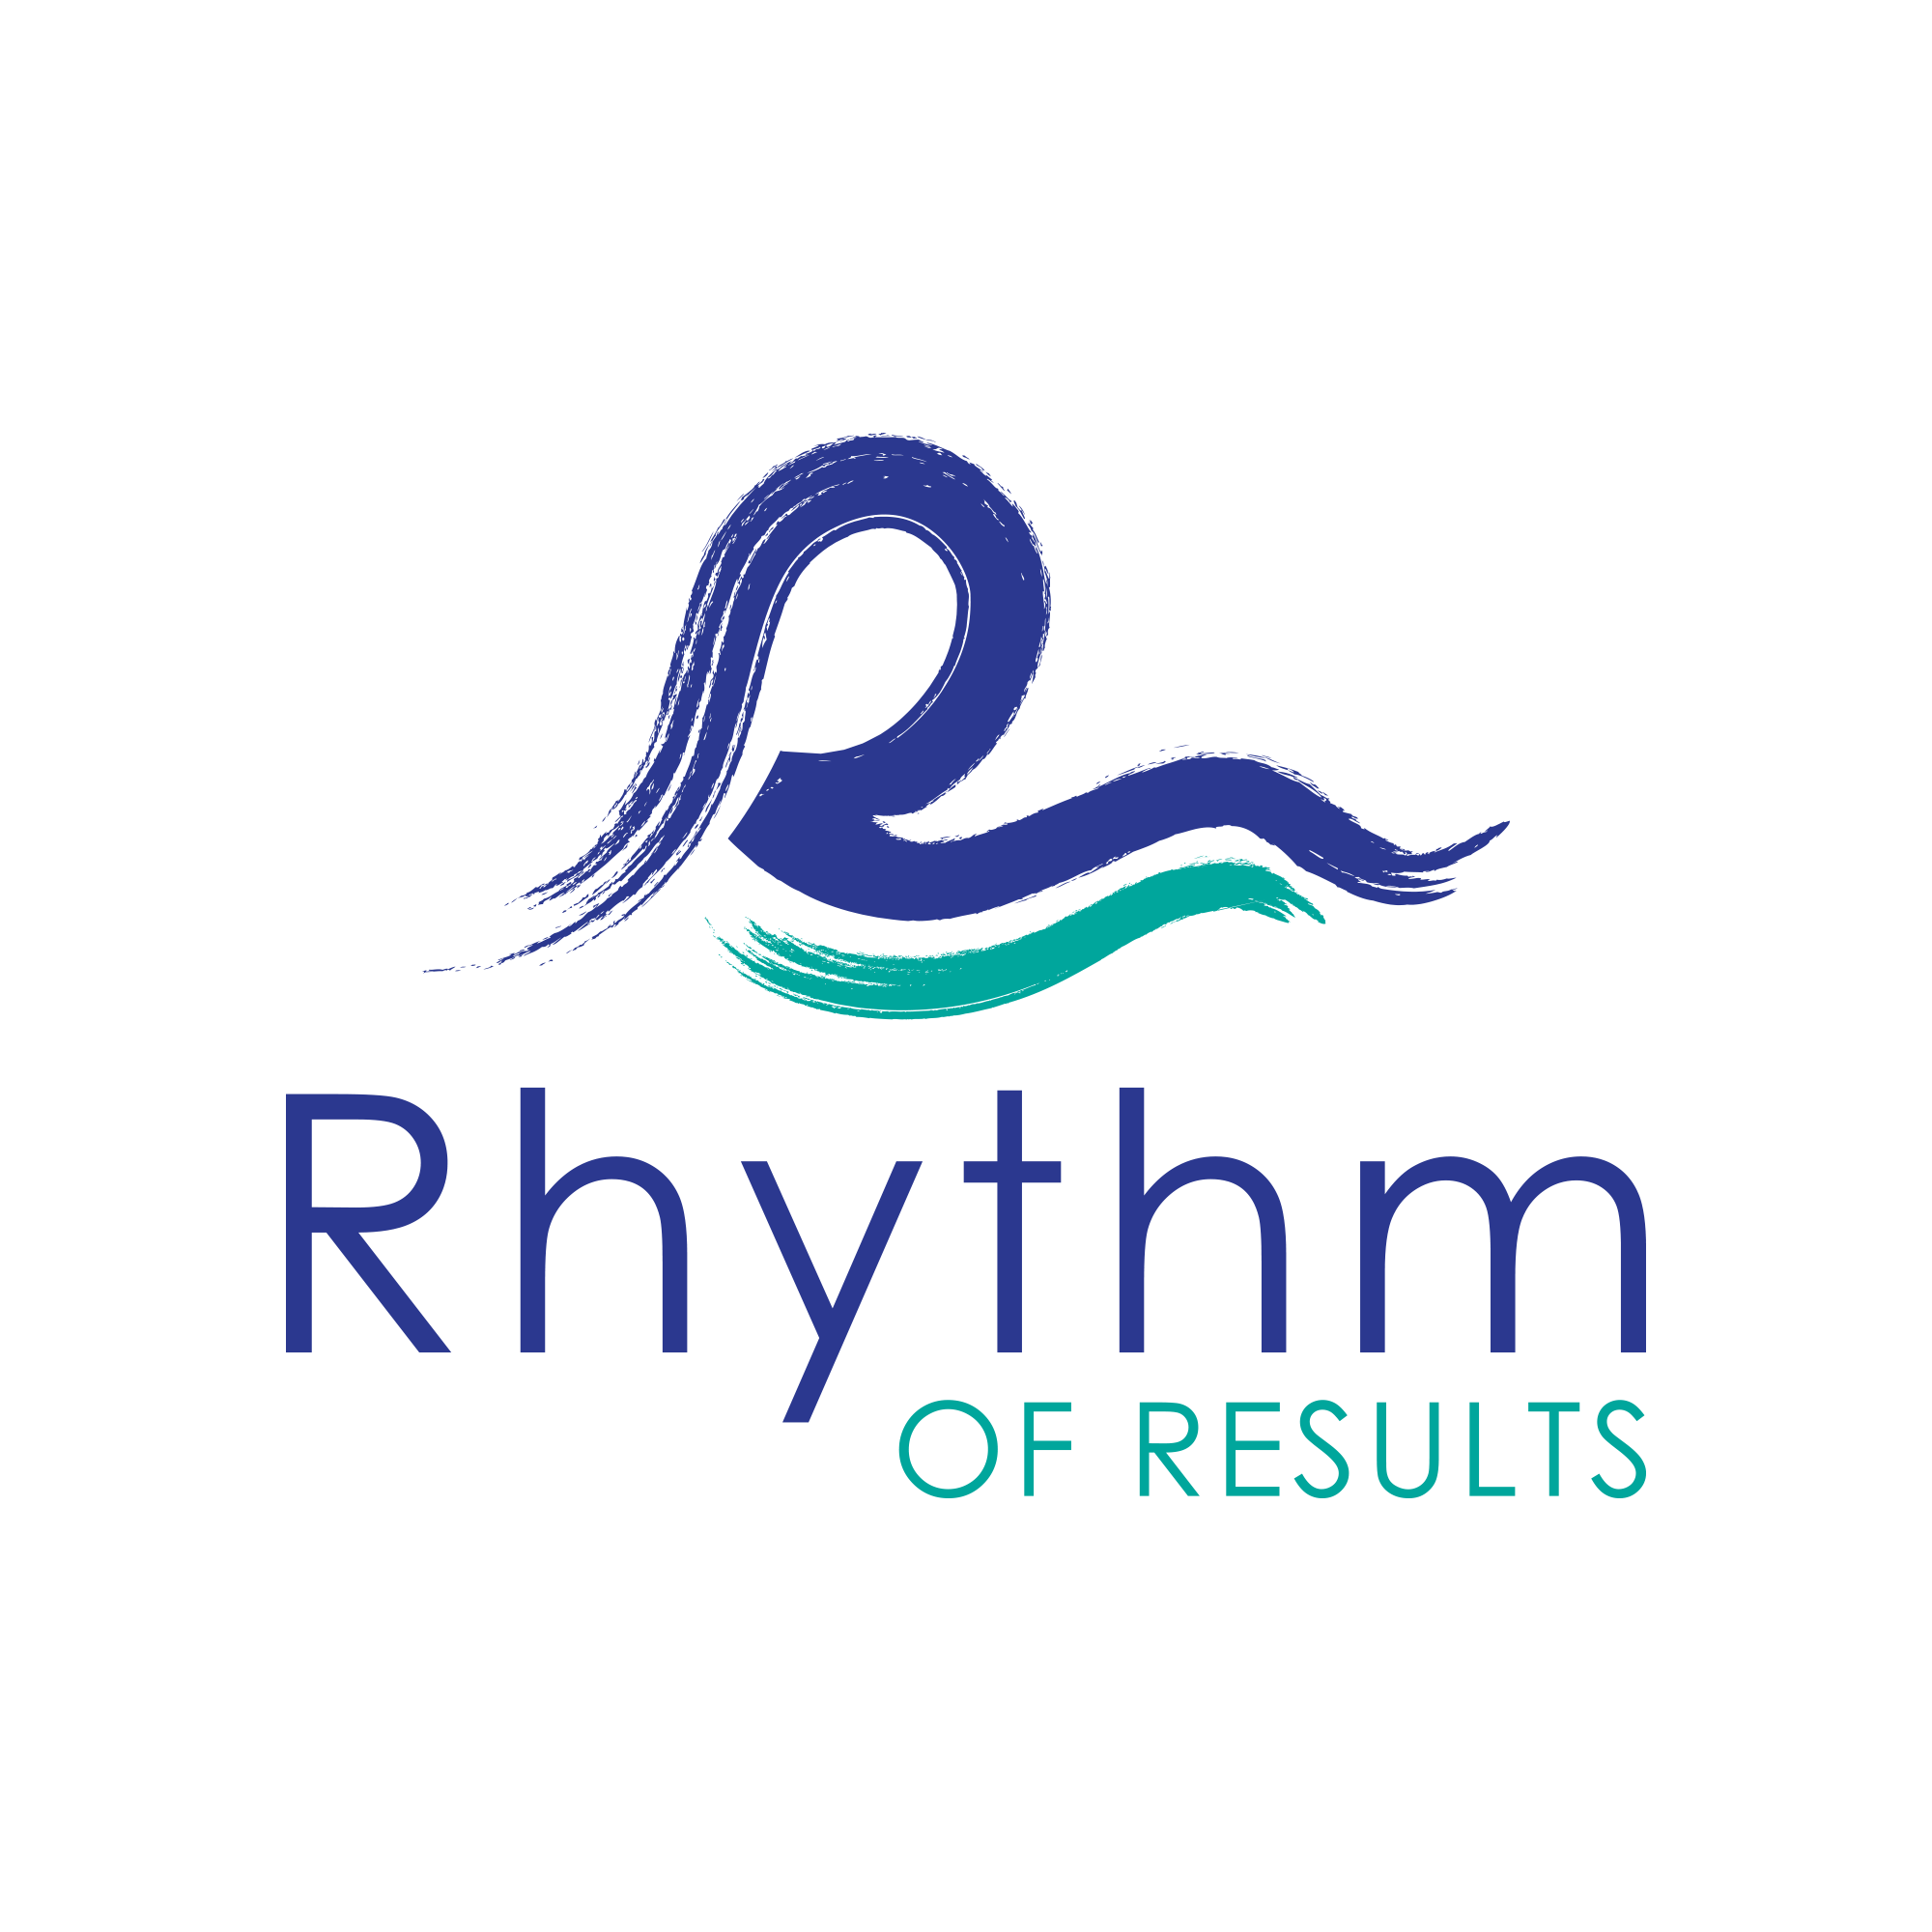 Revised Rhythm Logo.png